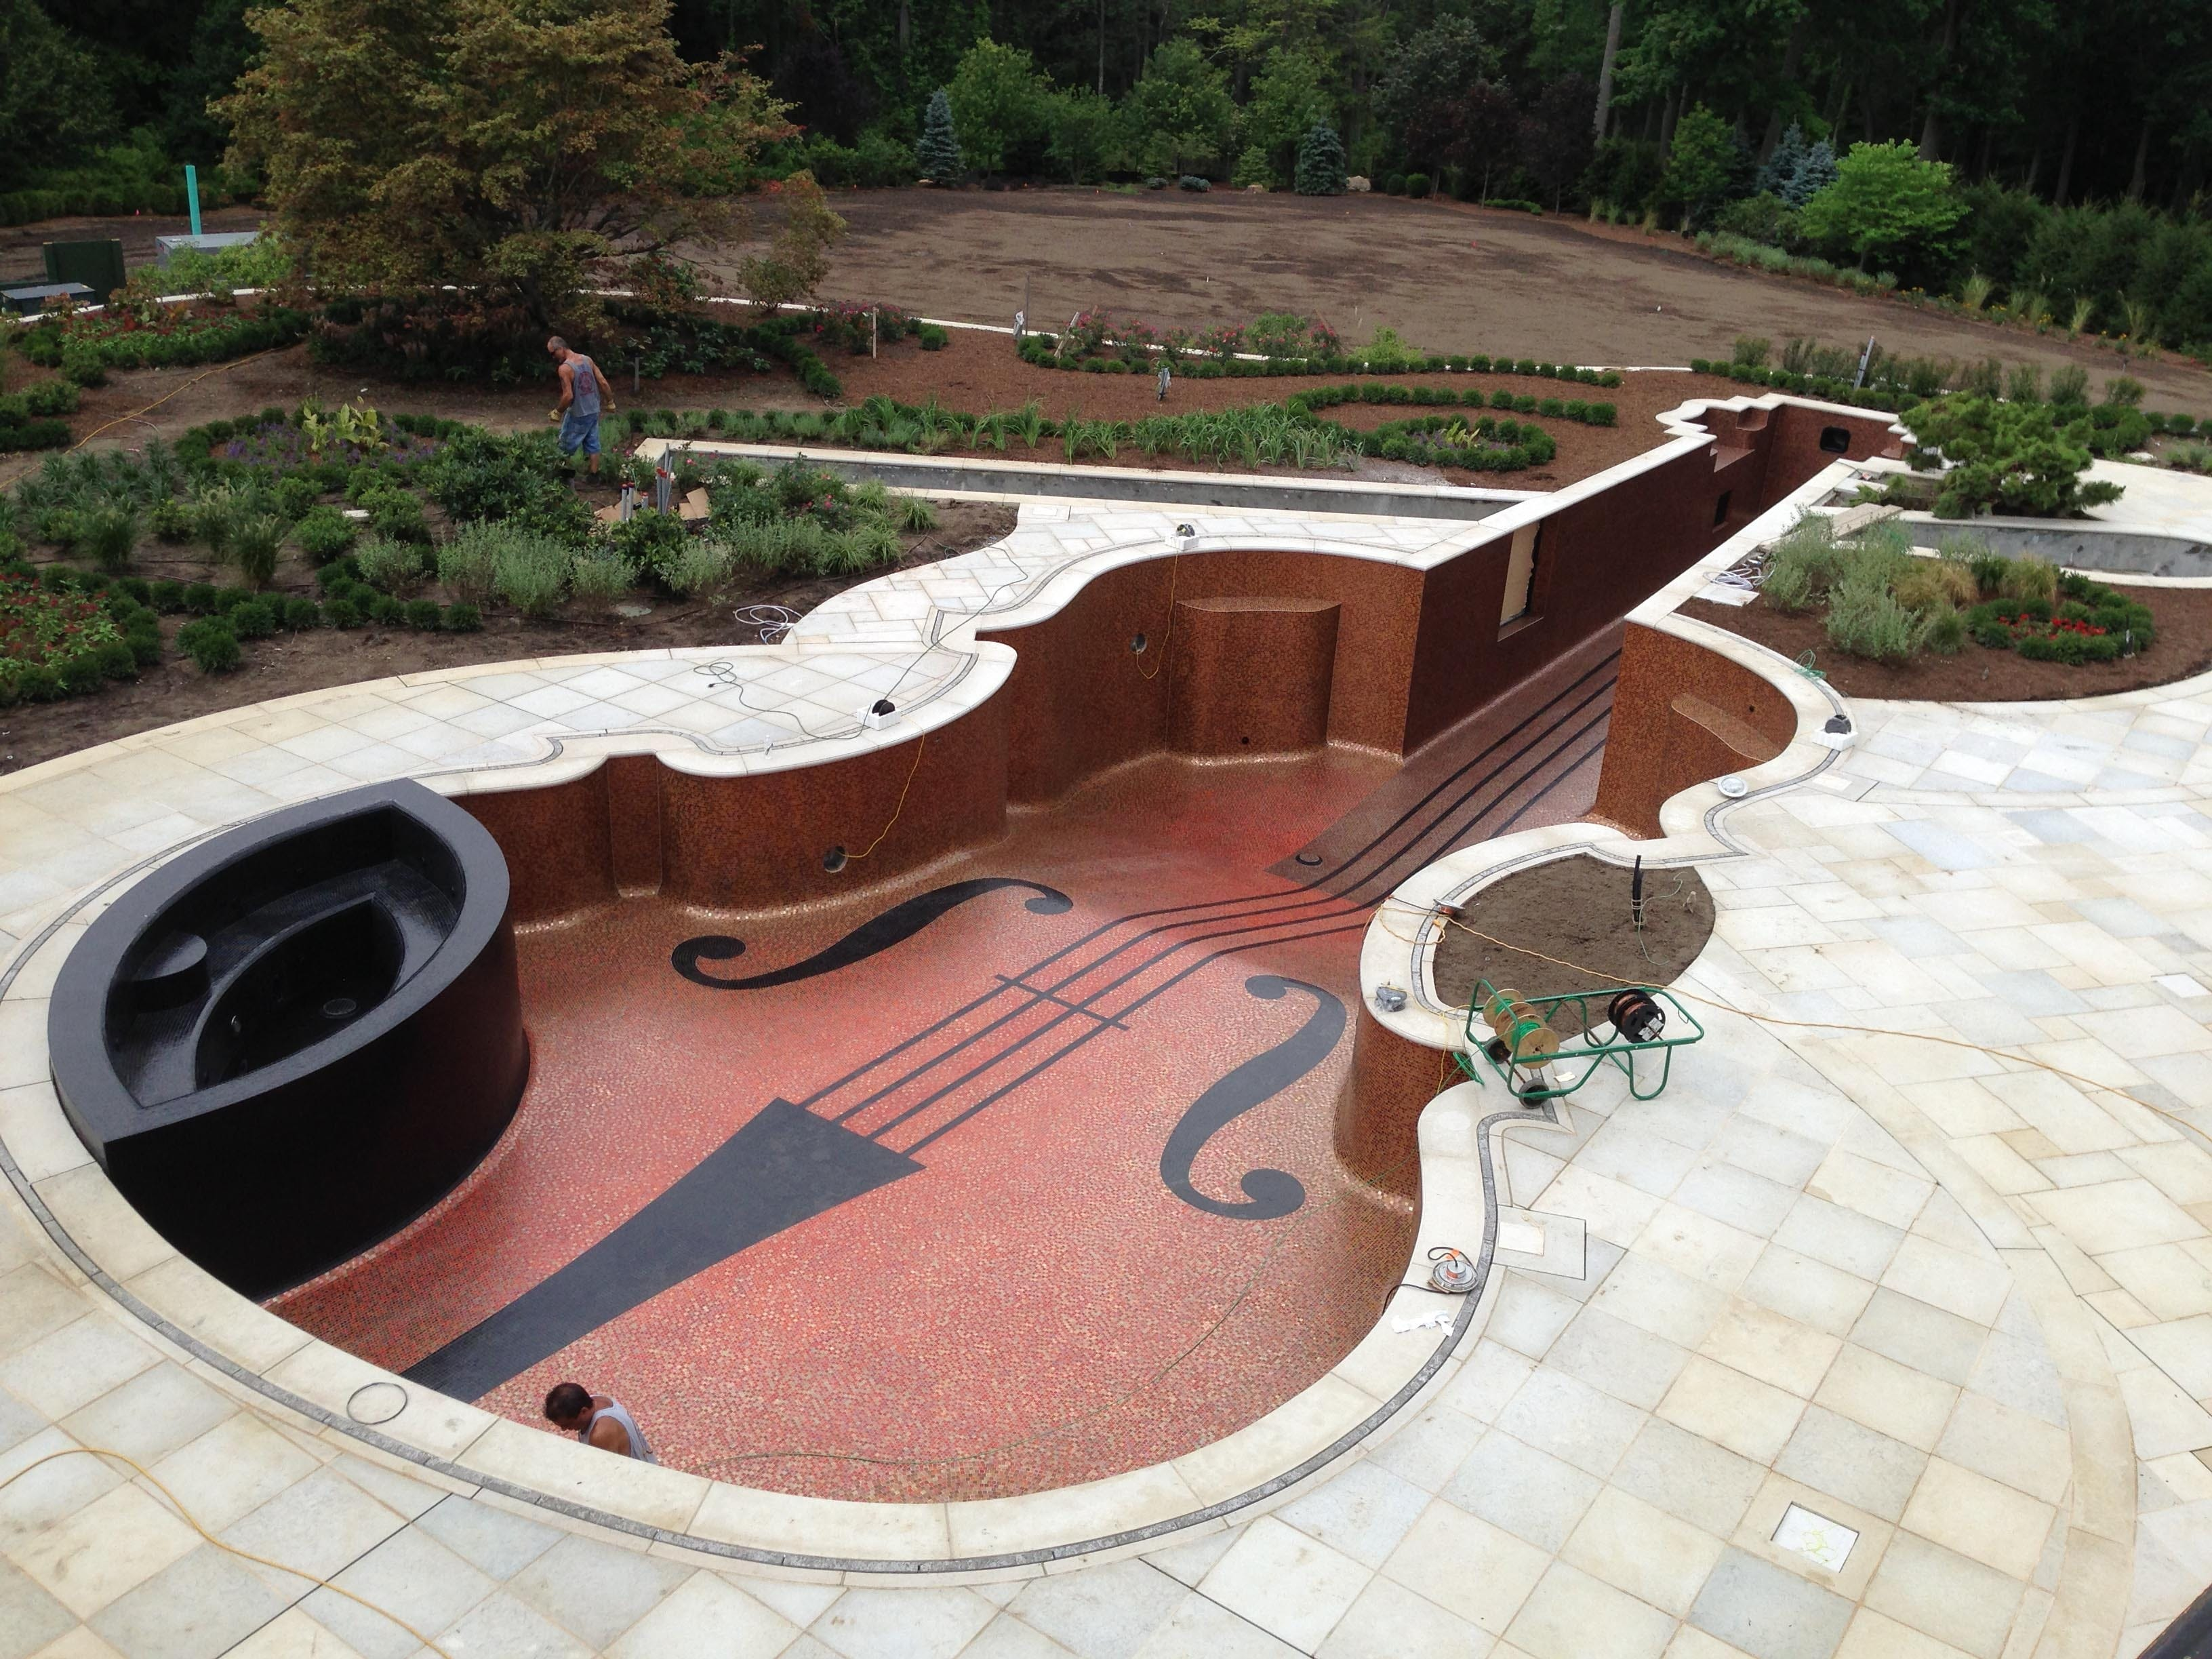 A unique violin-shaped pool was designed and built by Chris Cipriano of Mahwah, N.J.  Courtesy of Cipriano Landscape Design A unique violin-shaped pool was designed and built by Chris Cipriano, of Mahwah, N.J., -based Cipriano Landscape Design.